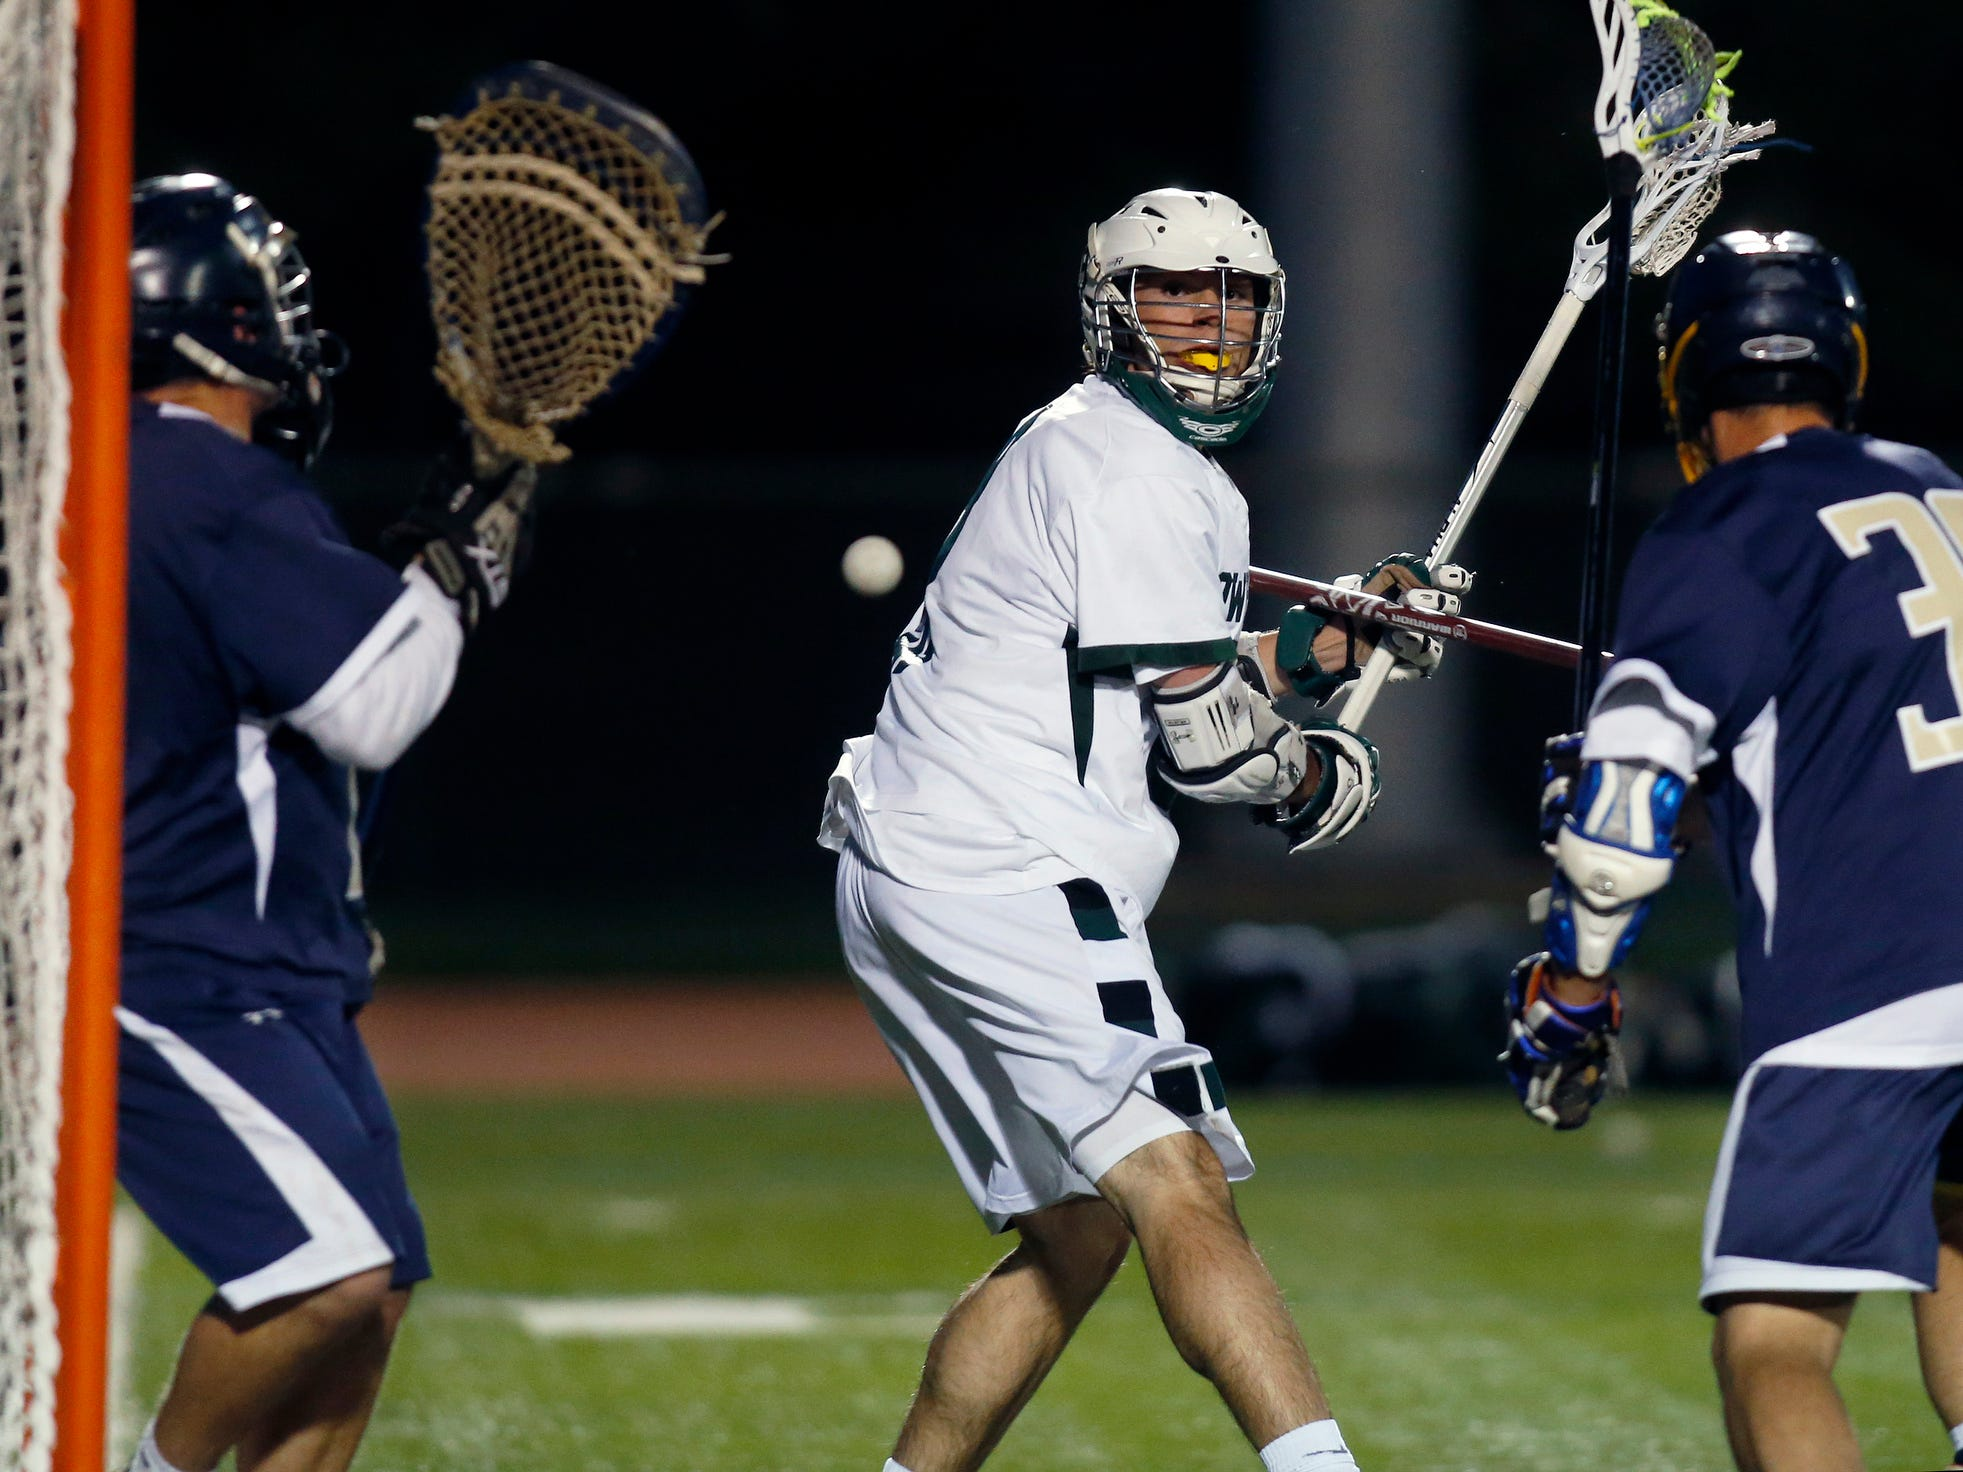 Tower Hill's Andrew Pettit turns to watch his back-to-the-goal shot find its way past Delaware Military Academy goalie Alex Kurfuerst (left) and defender Jonathan Howell in the second quarter of Tower's 12-9 comeback win at home Friday.